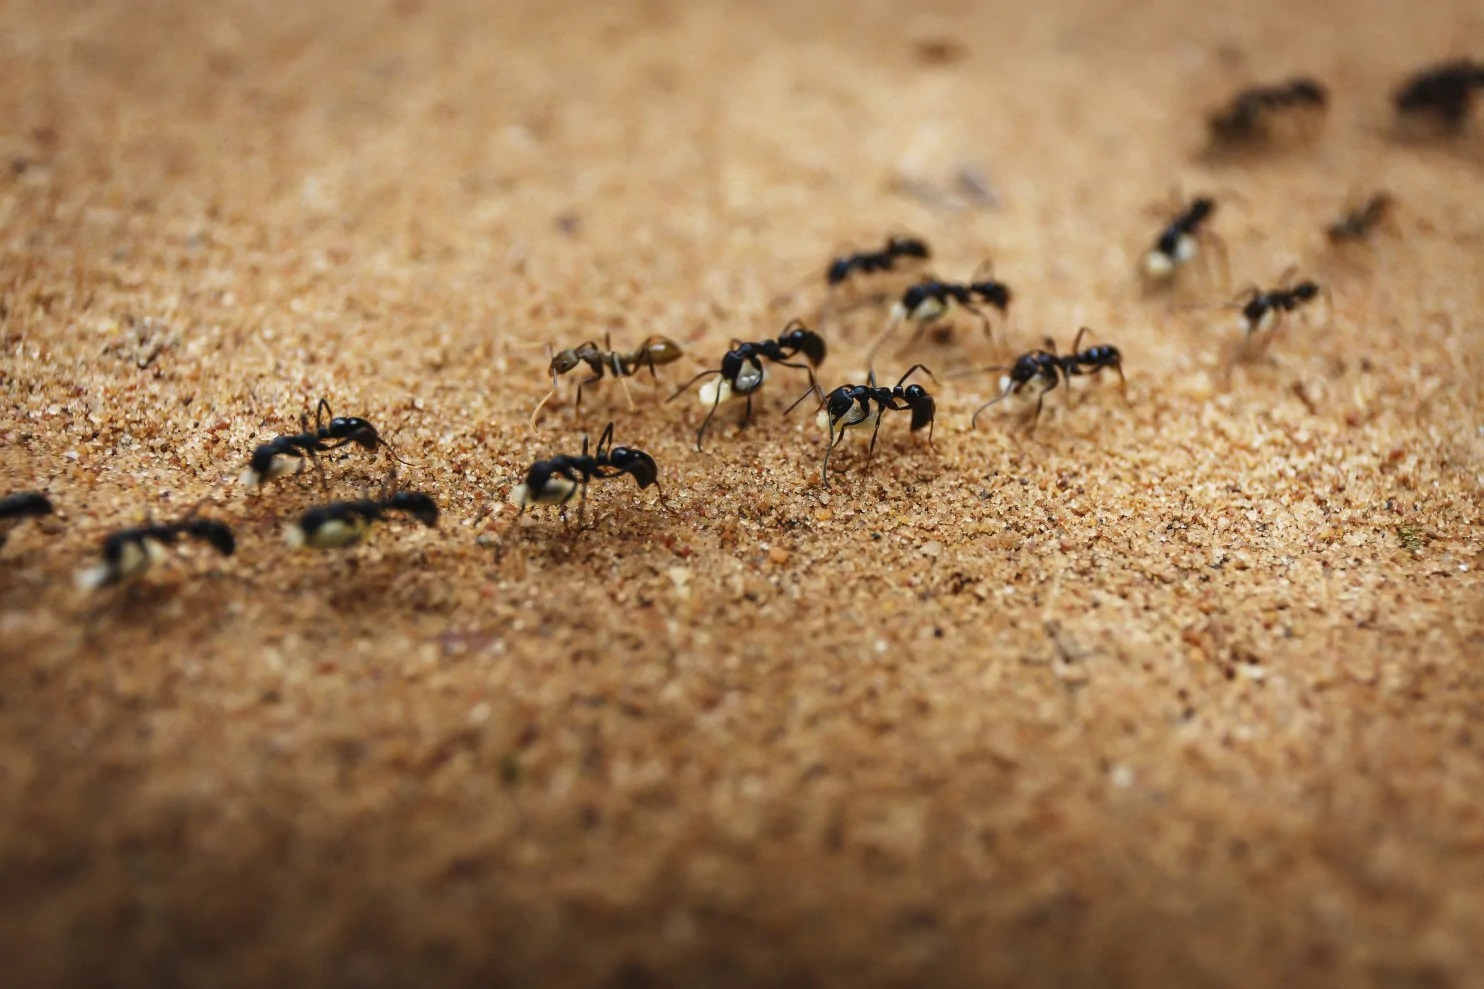 Are ants attracted to heat 2021 - Image By washingtonpost